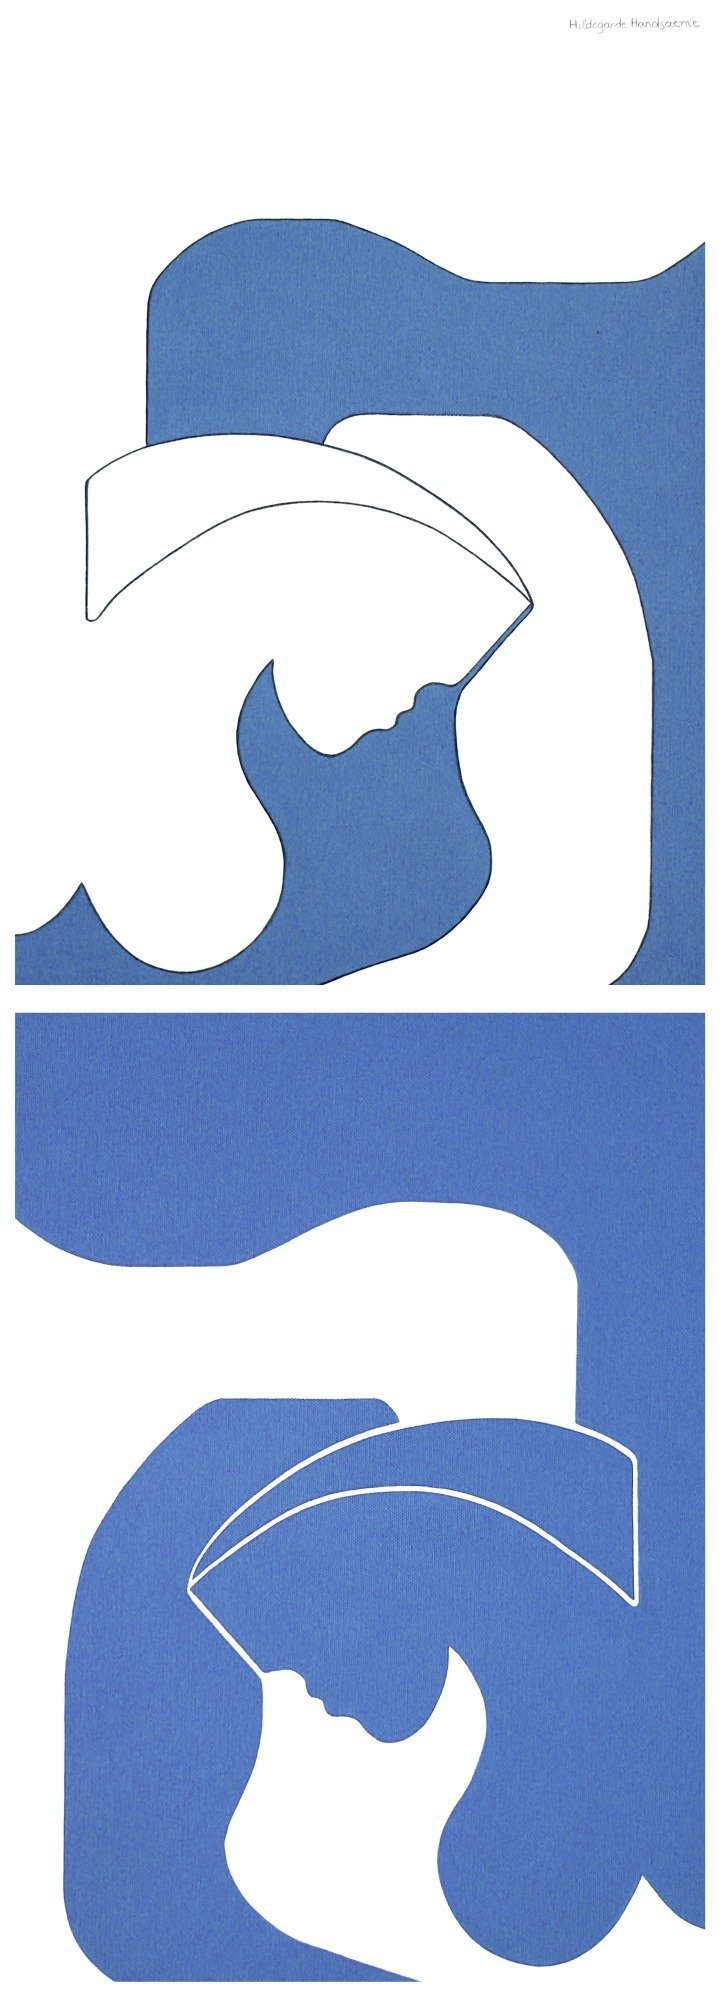 Blue Shadow (diptych) by Hildegarde Handsaeme, Painting at Art Acacia Gallery & Advisory